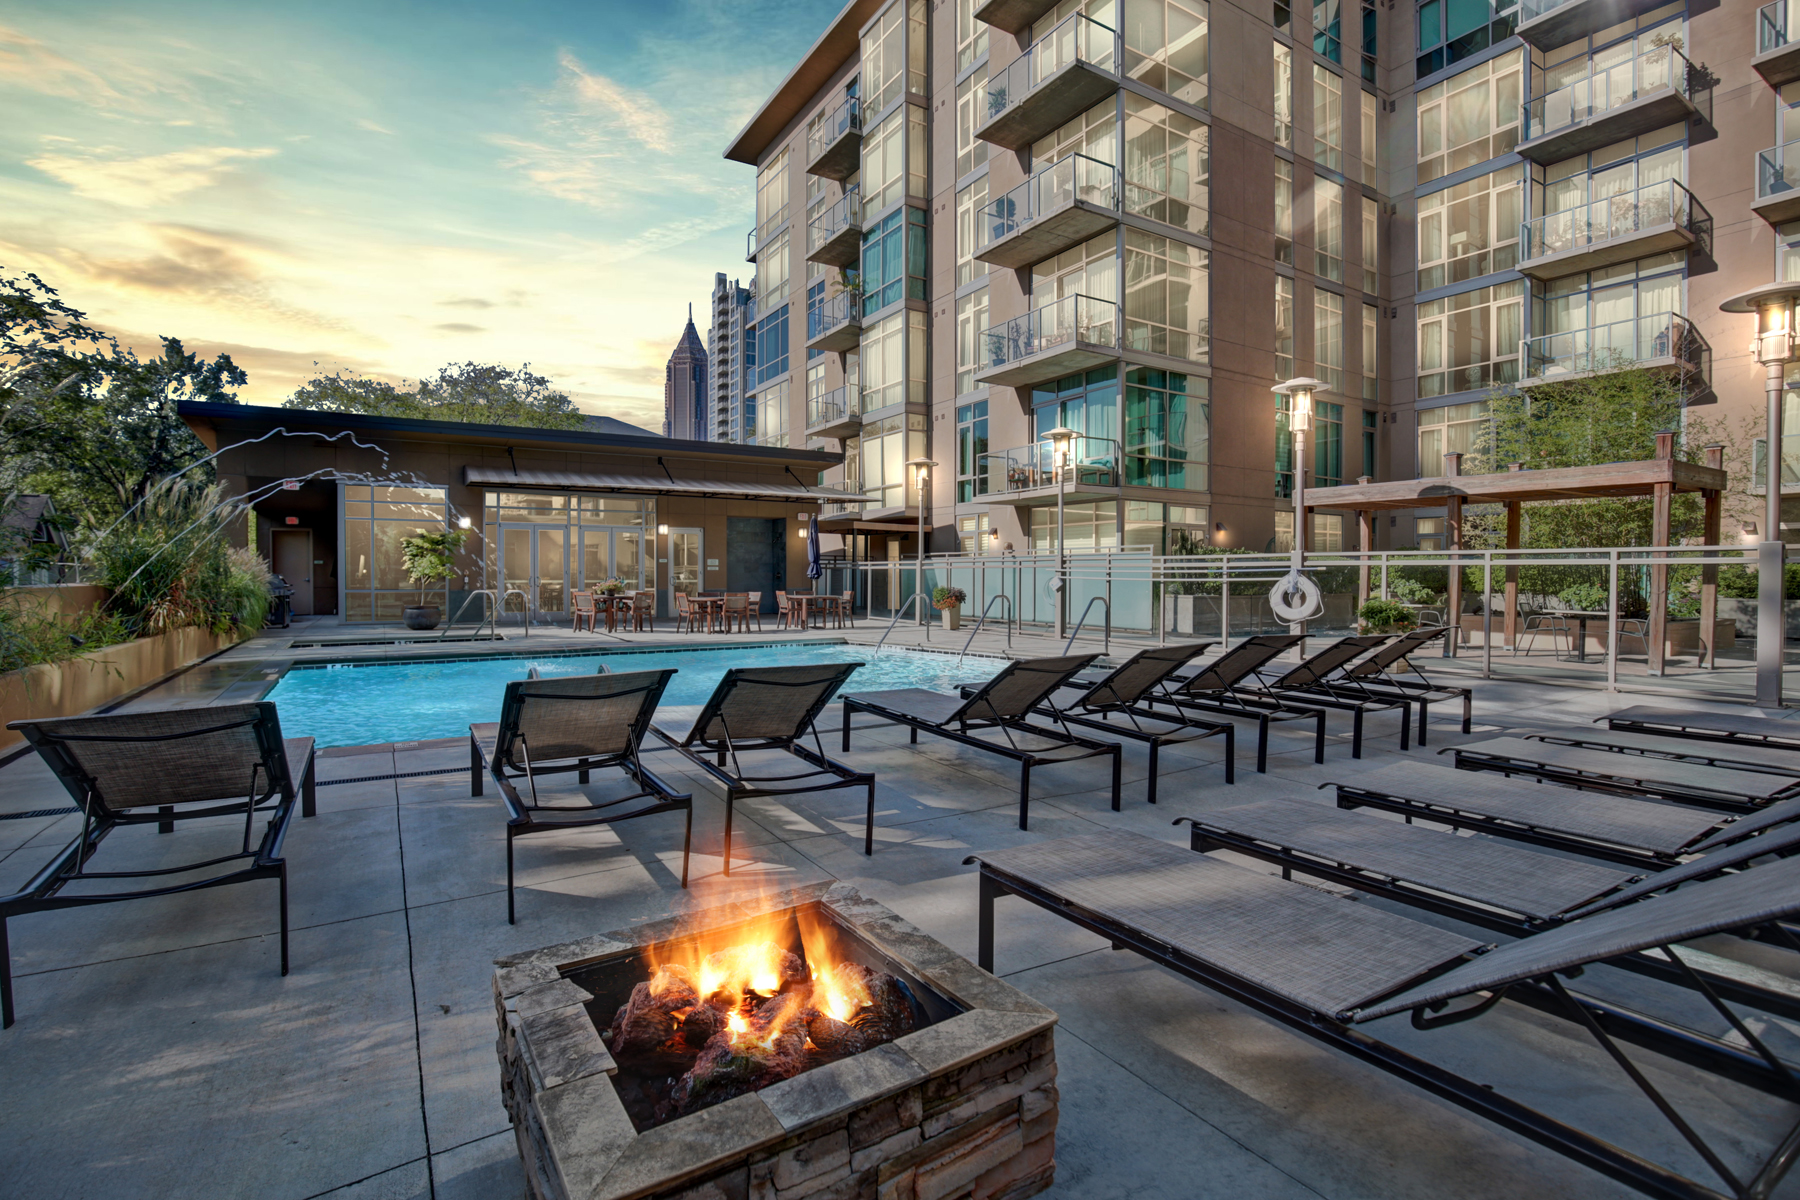 Peaceful End Unit Located In The Heart Of Midtown With Unobstructed Views 905 Juniper Street NE No. 705 Atlanta, Georgia 30309 Stati Uniti